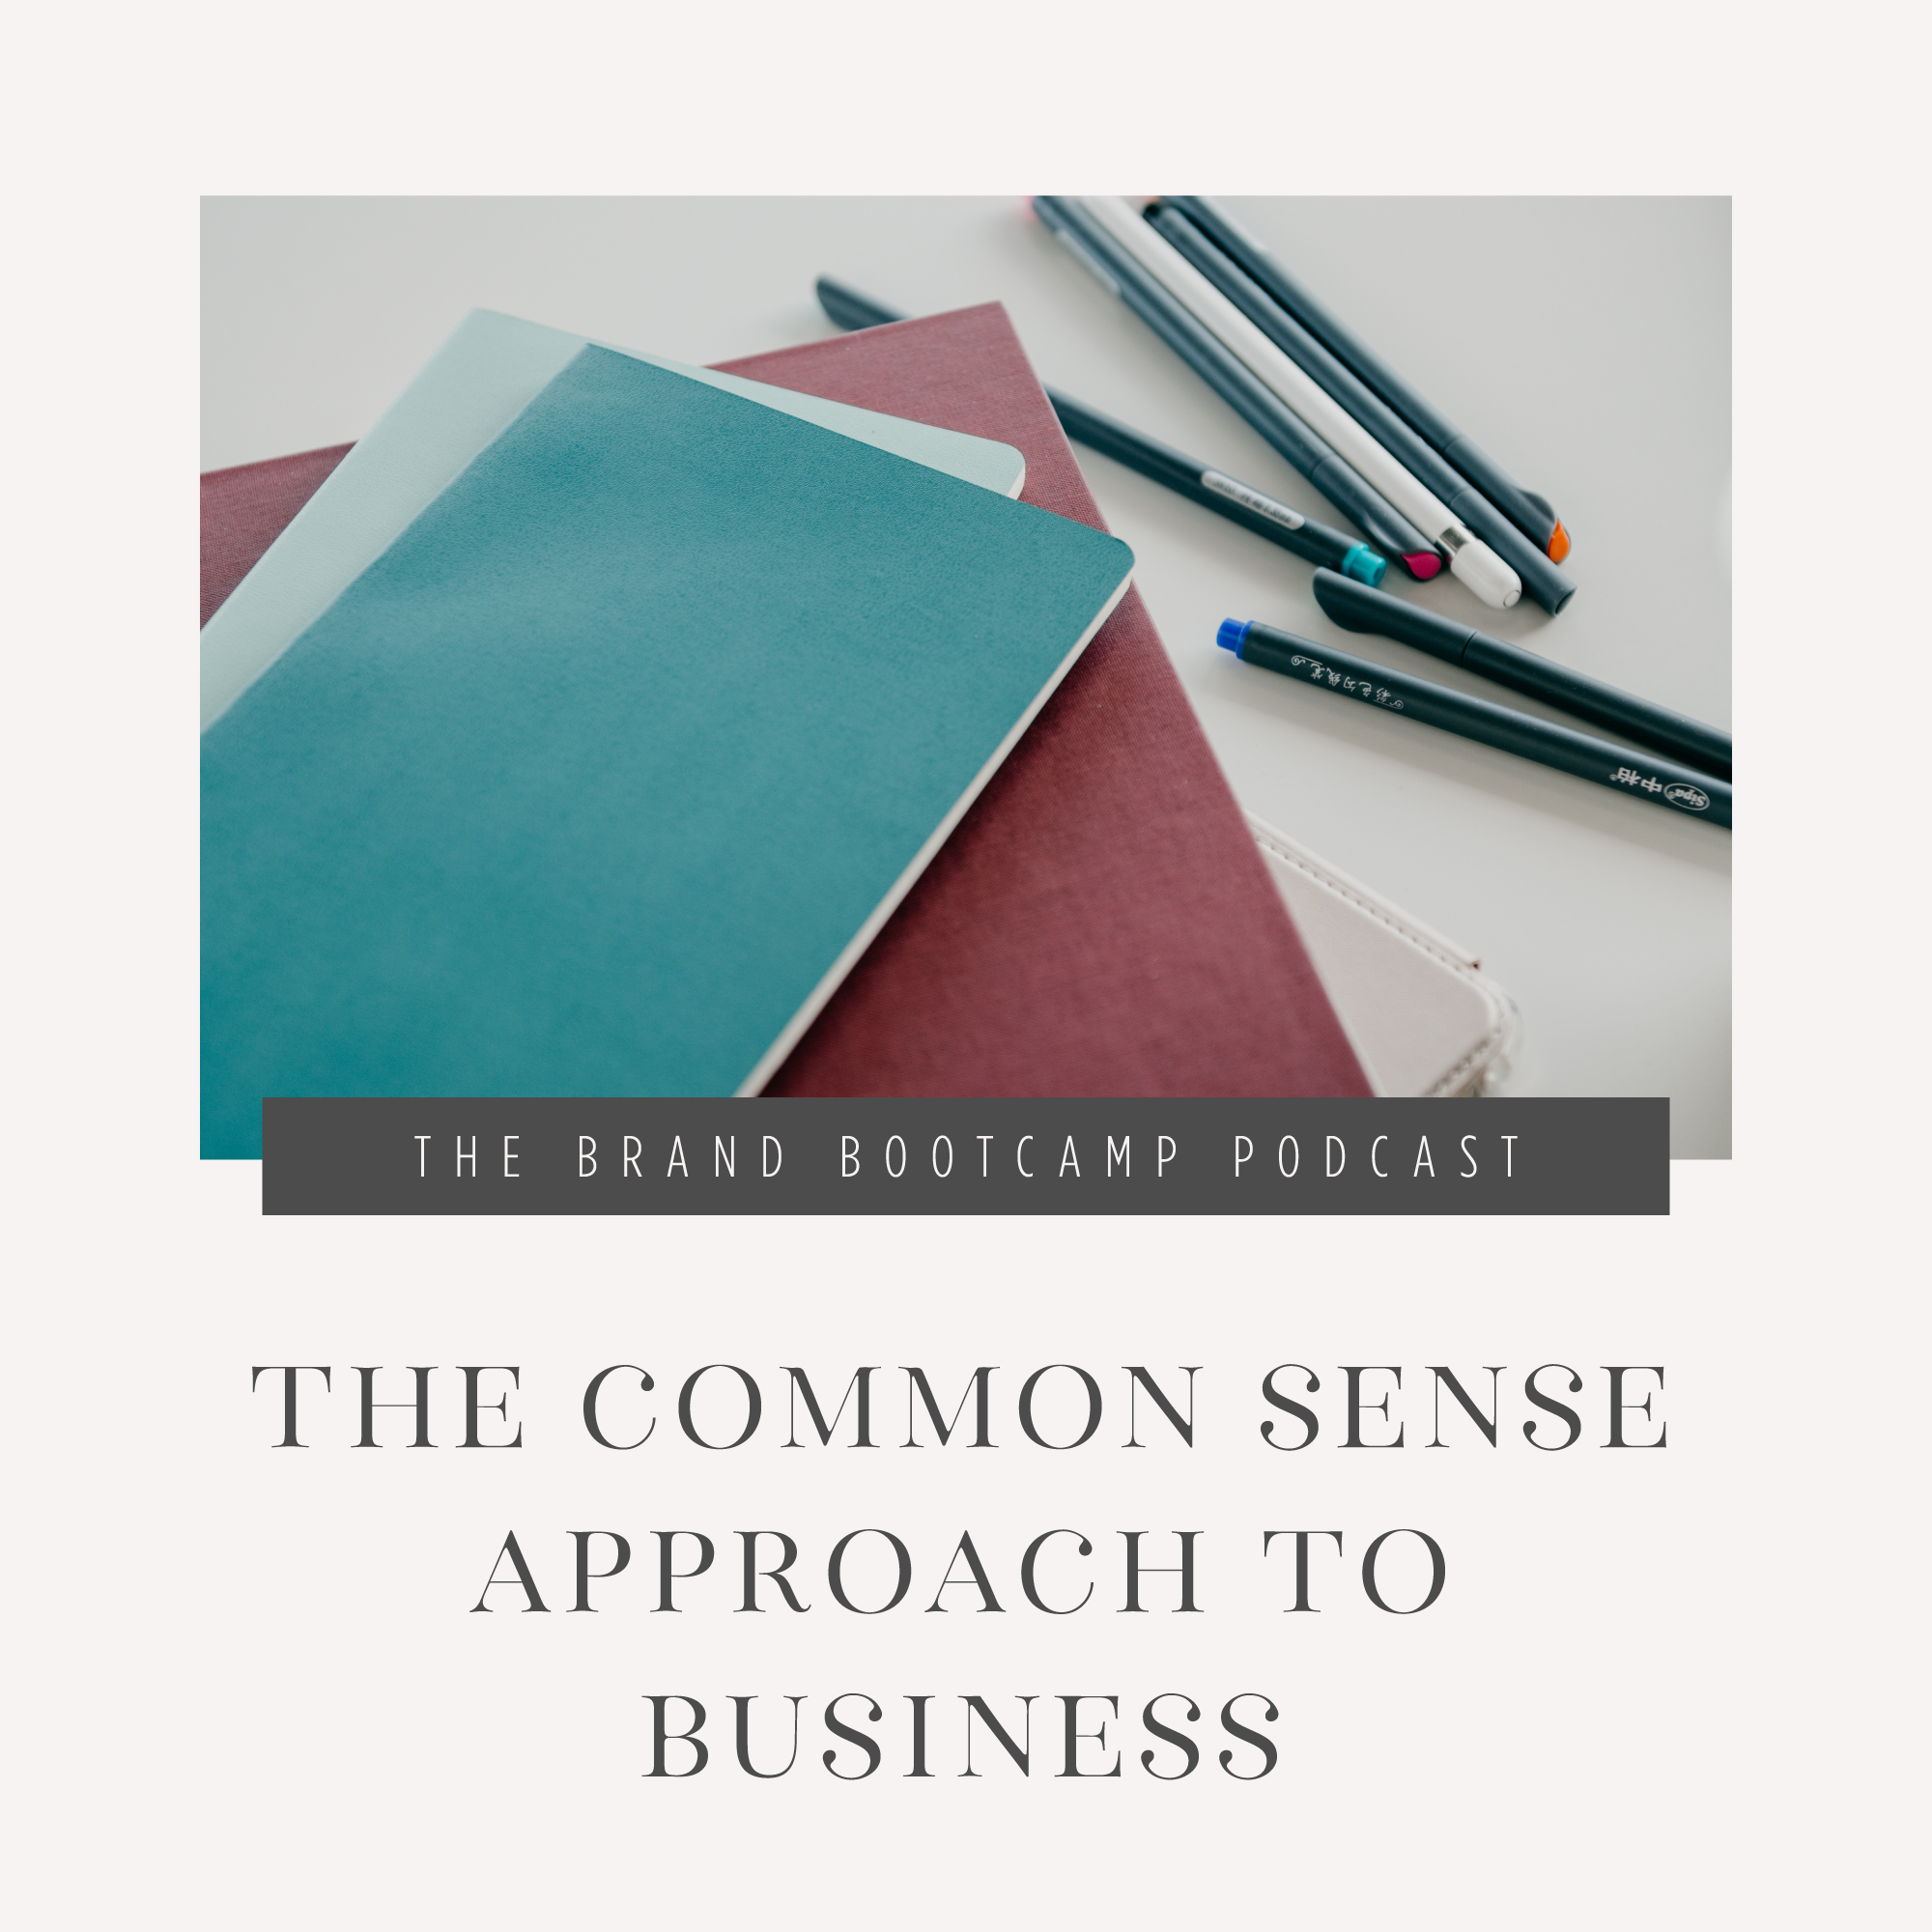 The Common Sense Approach to Business